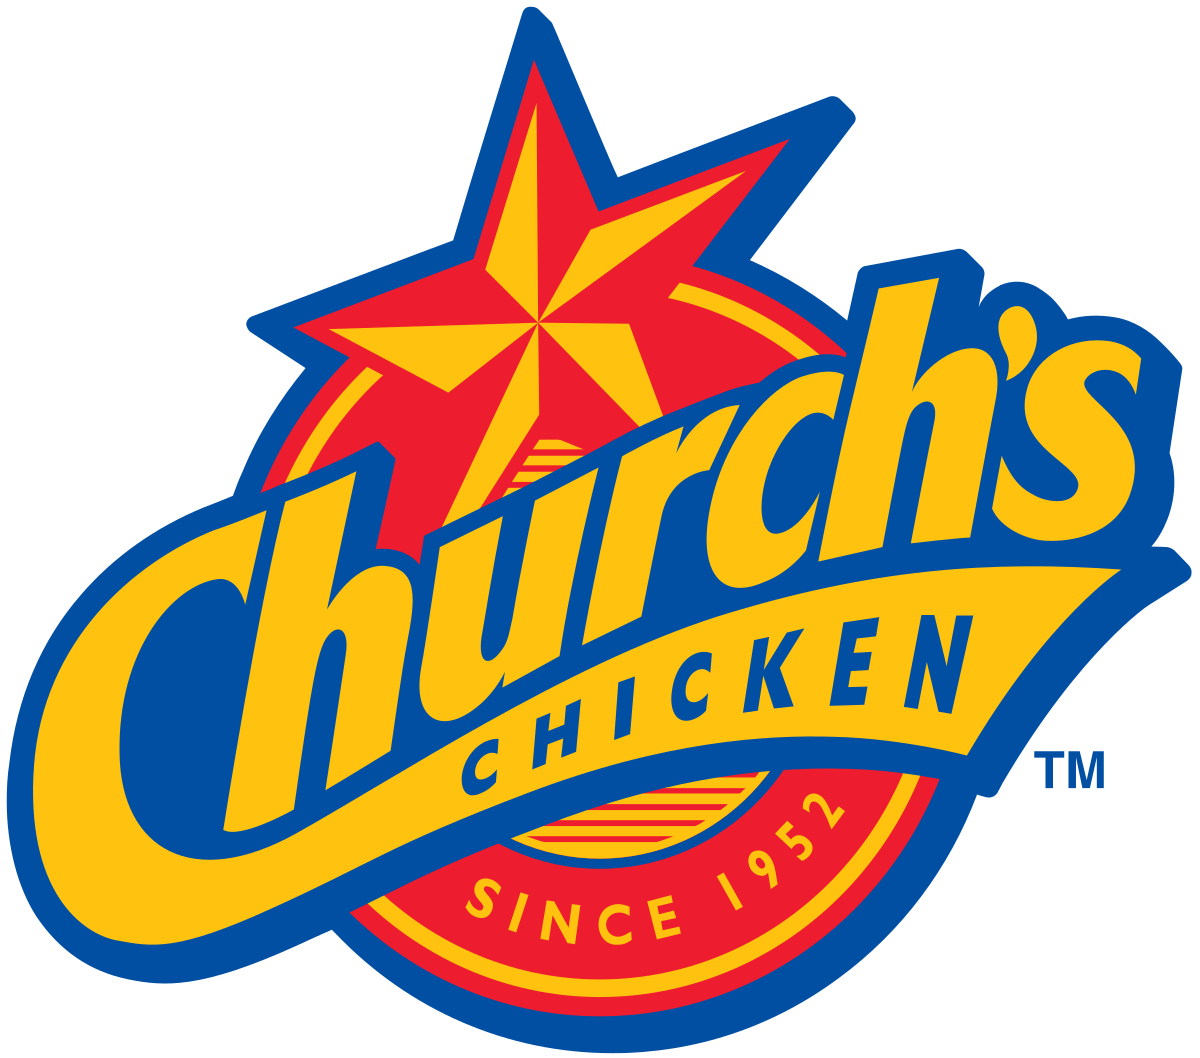 Church Chicken Mobile Logo